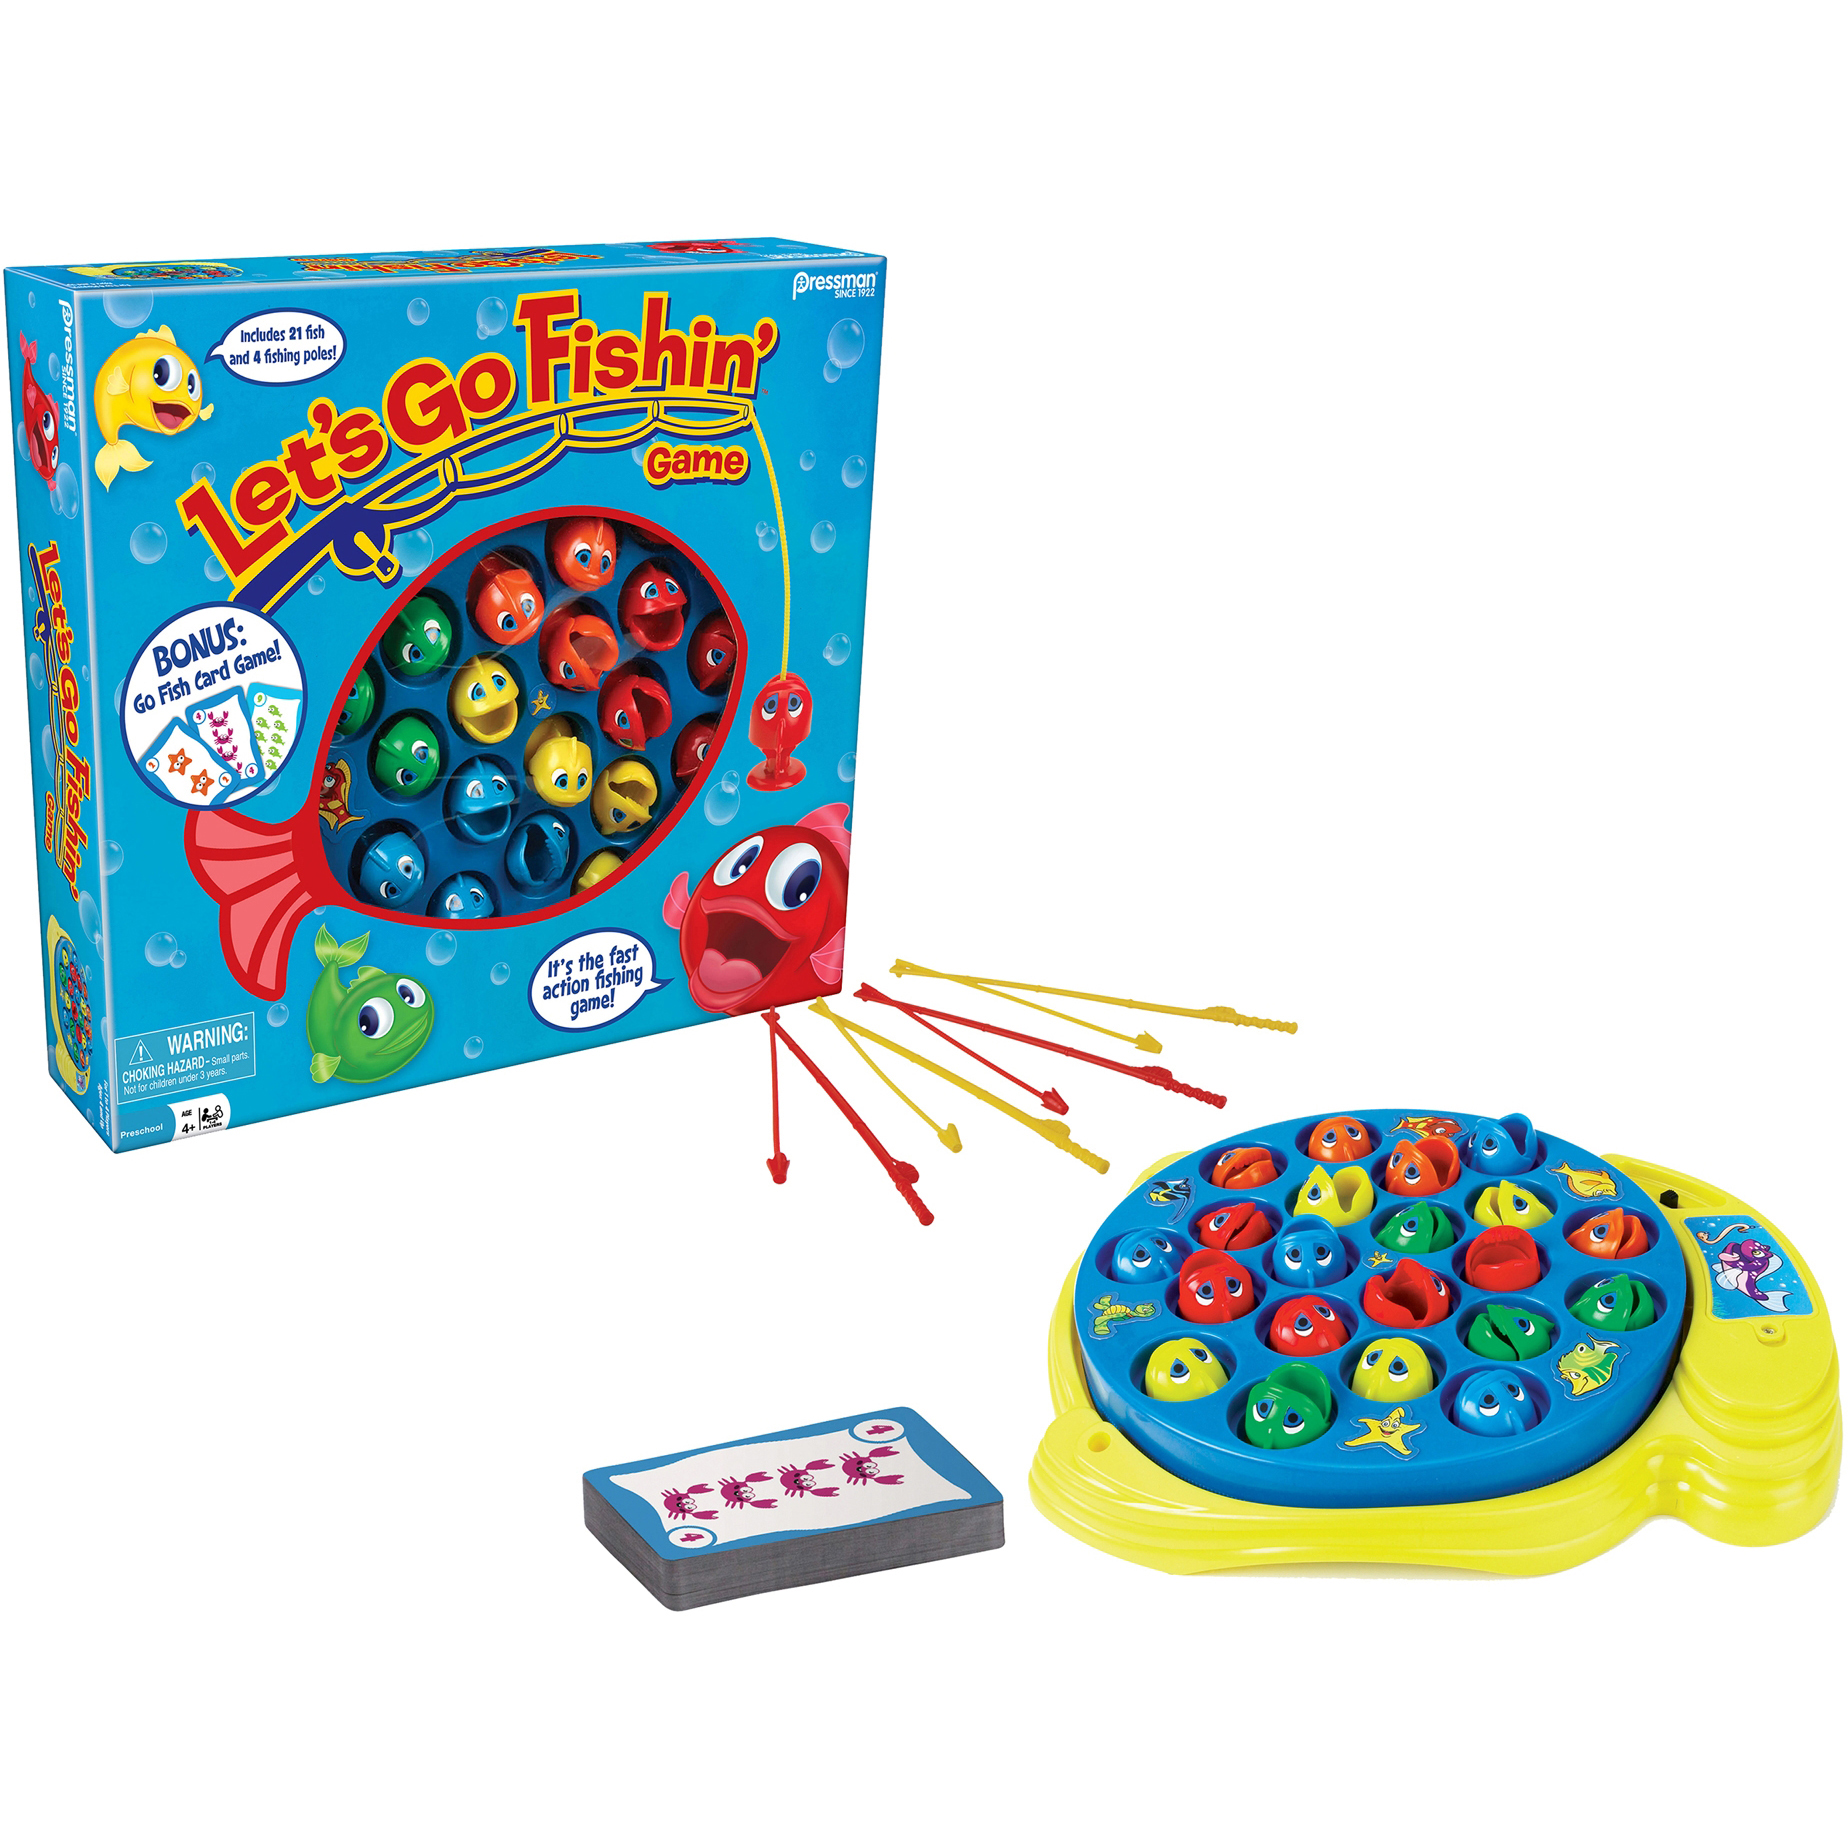 Pressman Toys Let's Go Fishin' and Go Fish Card Combo Game by Pressman Toy